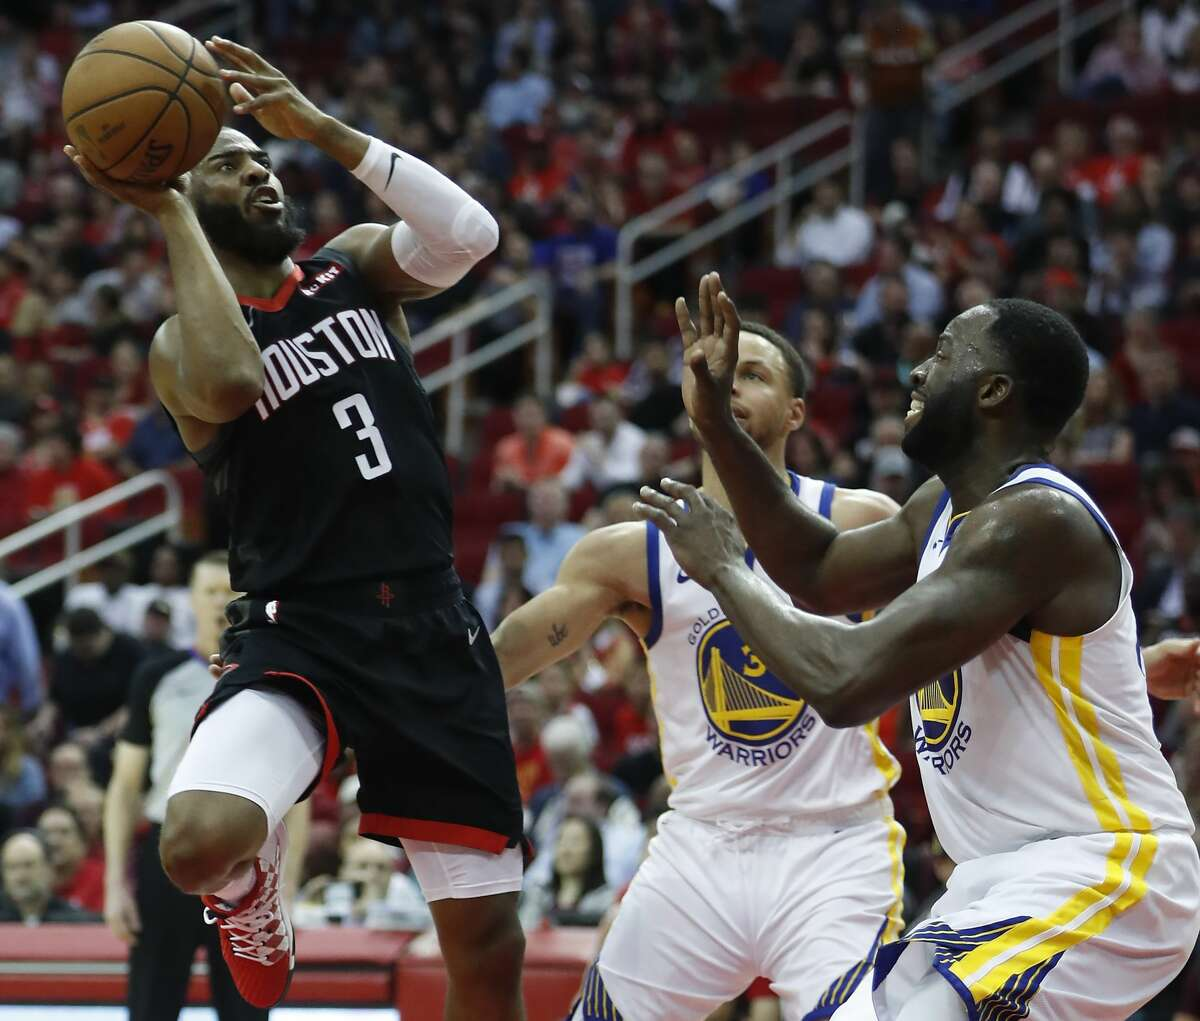 Houston Rockets guard Chris Paul (3) takes a shot against Golden State Warriors guard Stephen Curry (30) and forward Draymond Green (23) during the third quarter of an NBA basketball game at Toyota Center on Wednesday, March 13, 2019, in Houston.